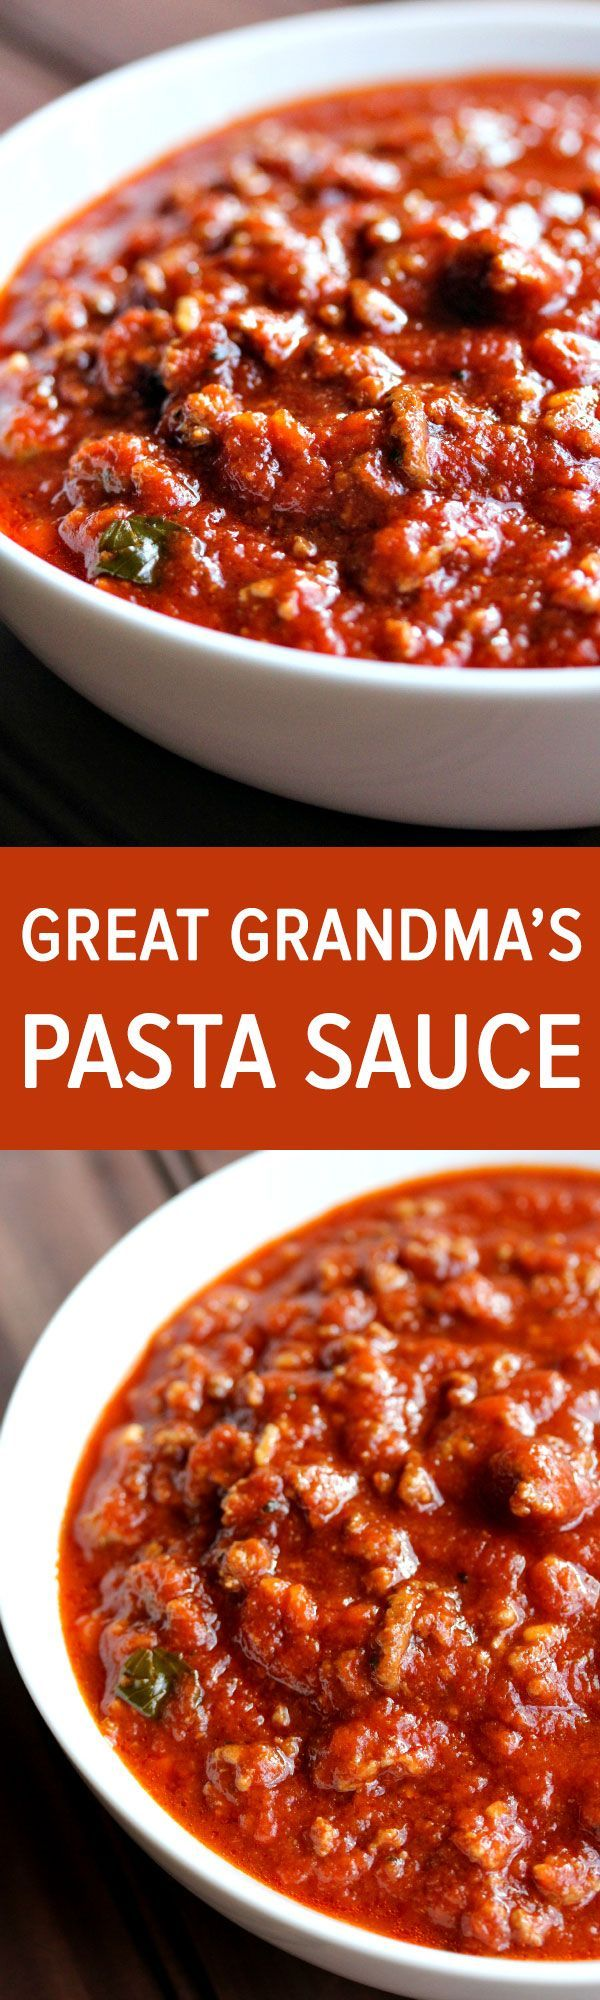 This pasta sauce is like liquid gold. It's the most delicious, rich, flavorful, pasta sauce I've ever had in my entire life. This pasta sauce was actually from Jason's great grandmother who came over from Italy.